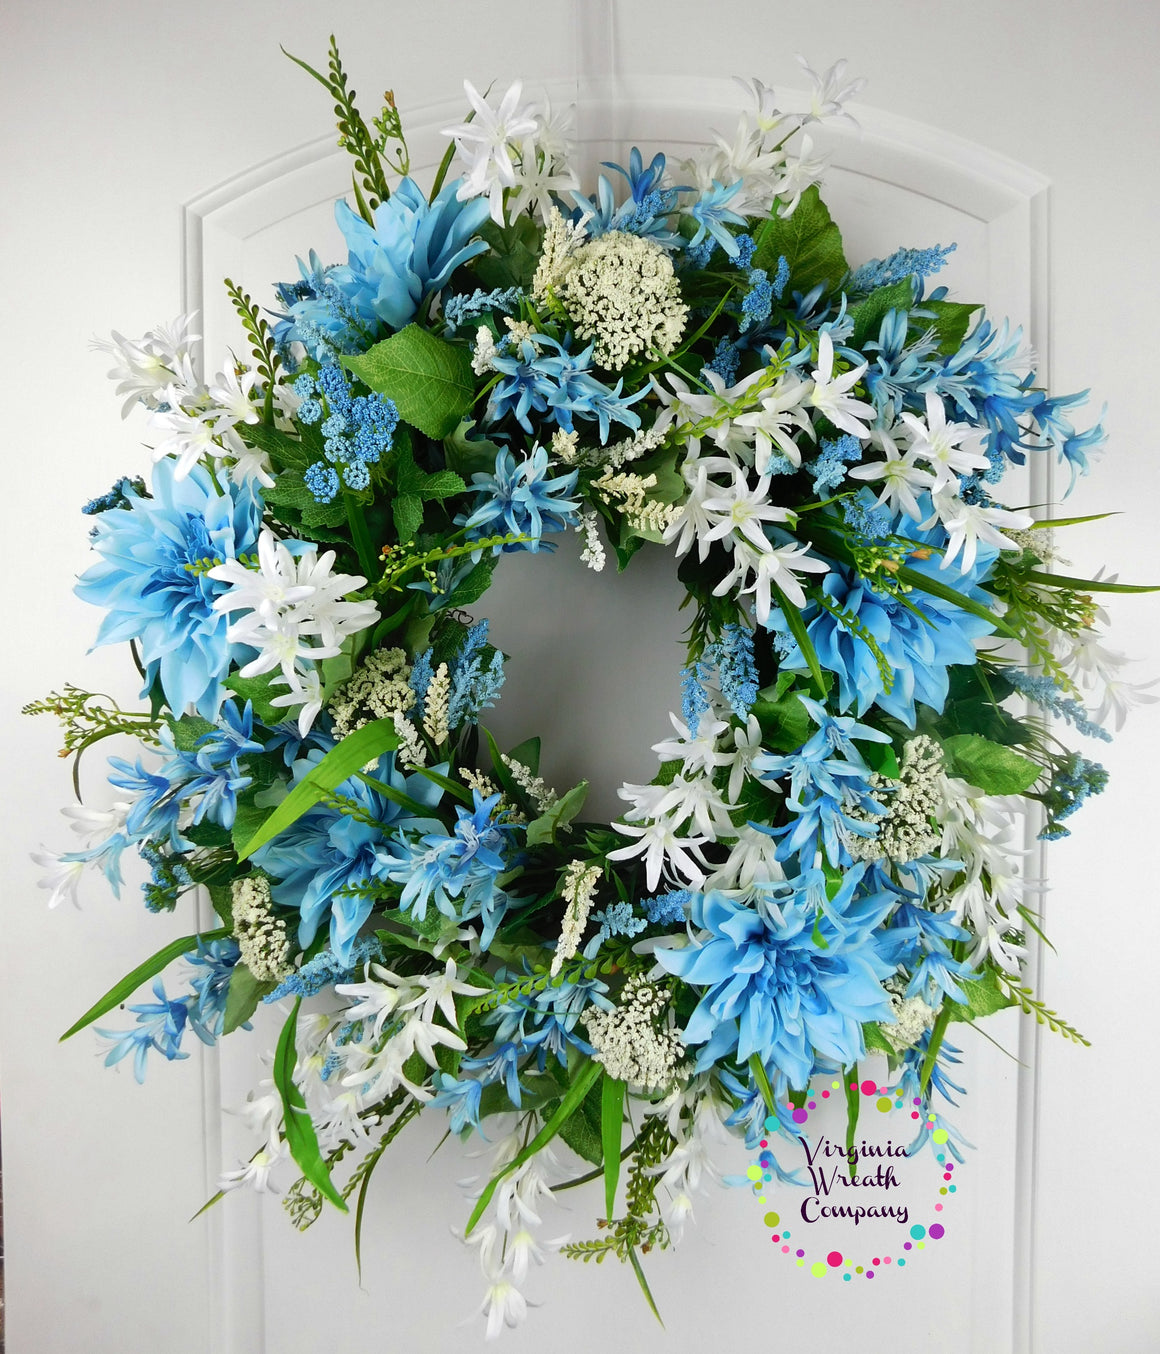 Summer wreaths summer door decor virginia wreath company blue and white wreath blue floral grapevine wreath izmirmasajfo Gallery